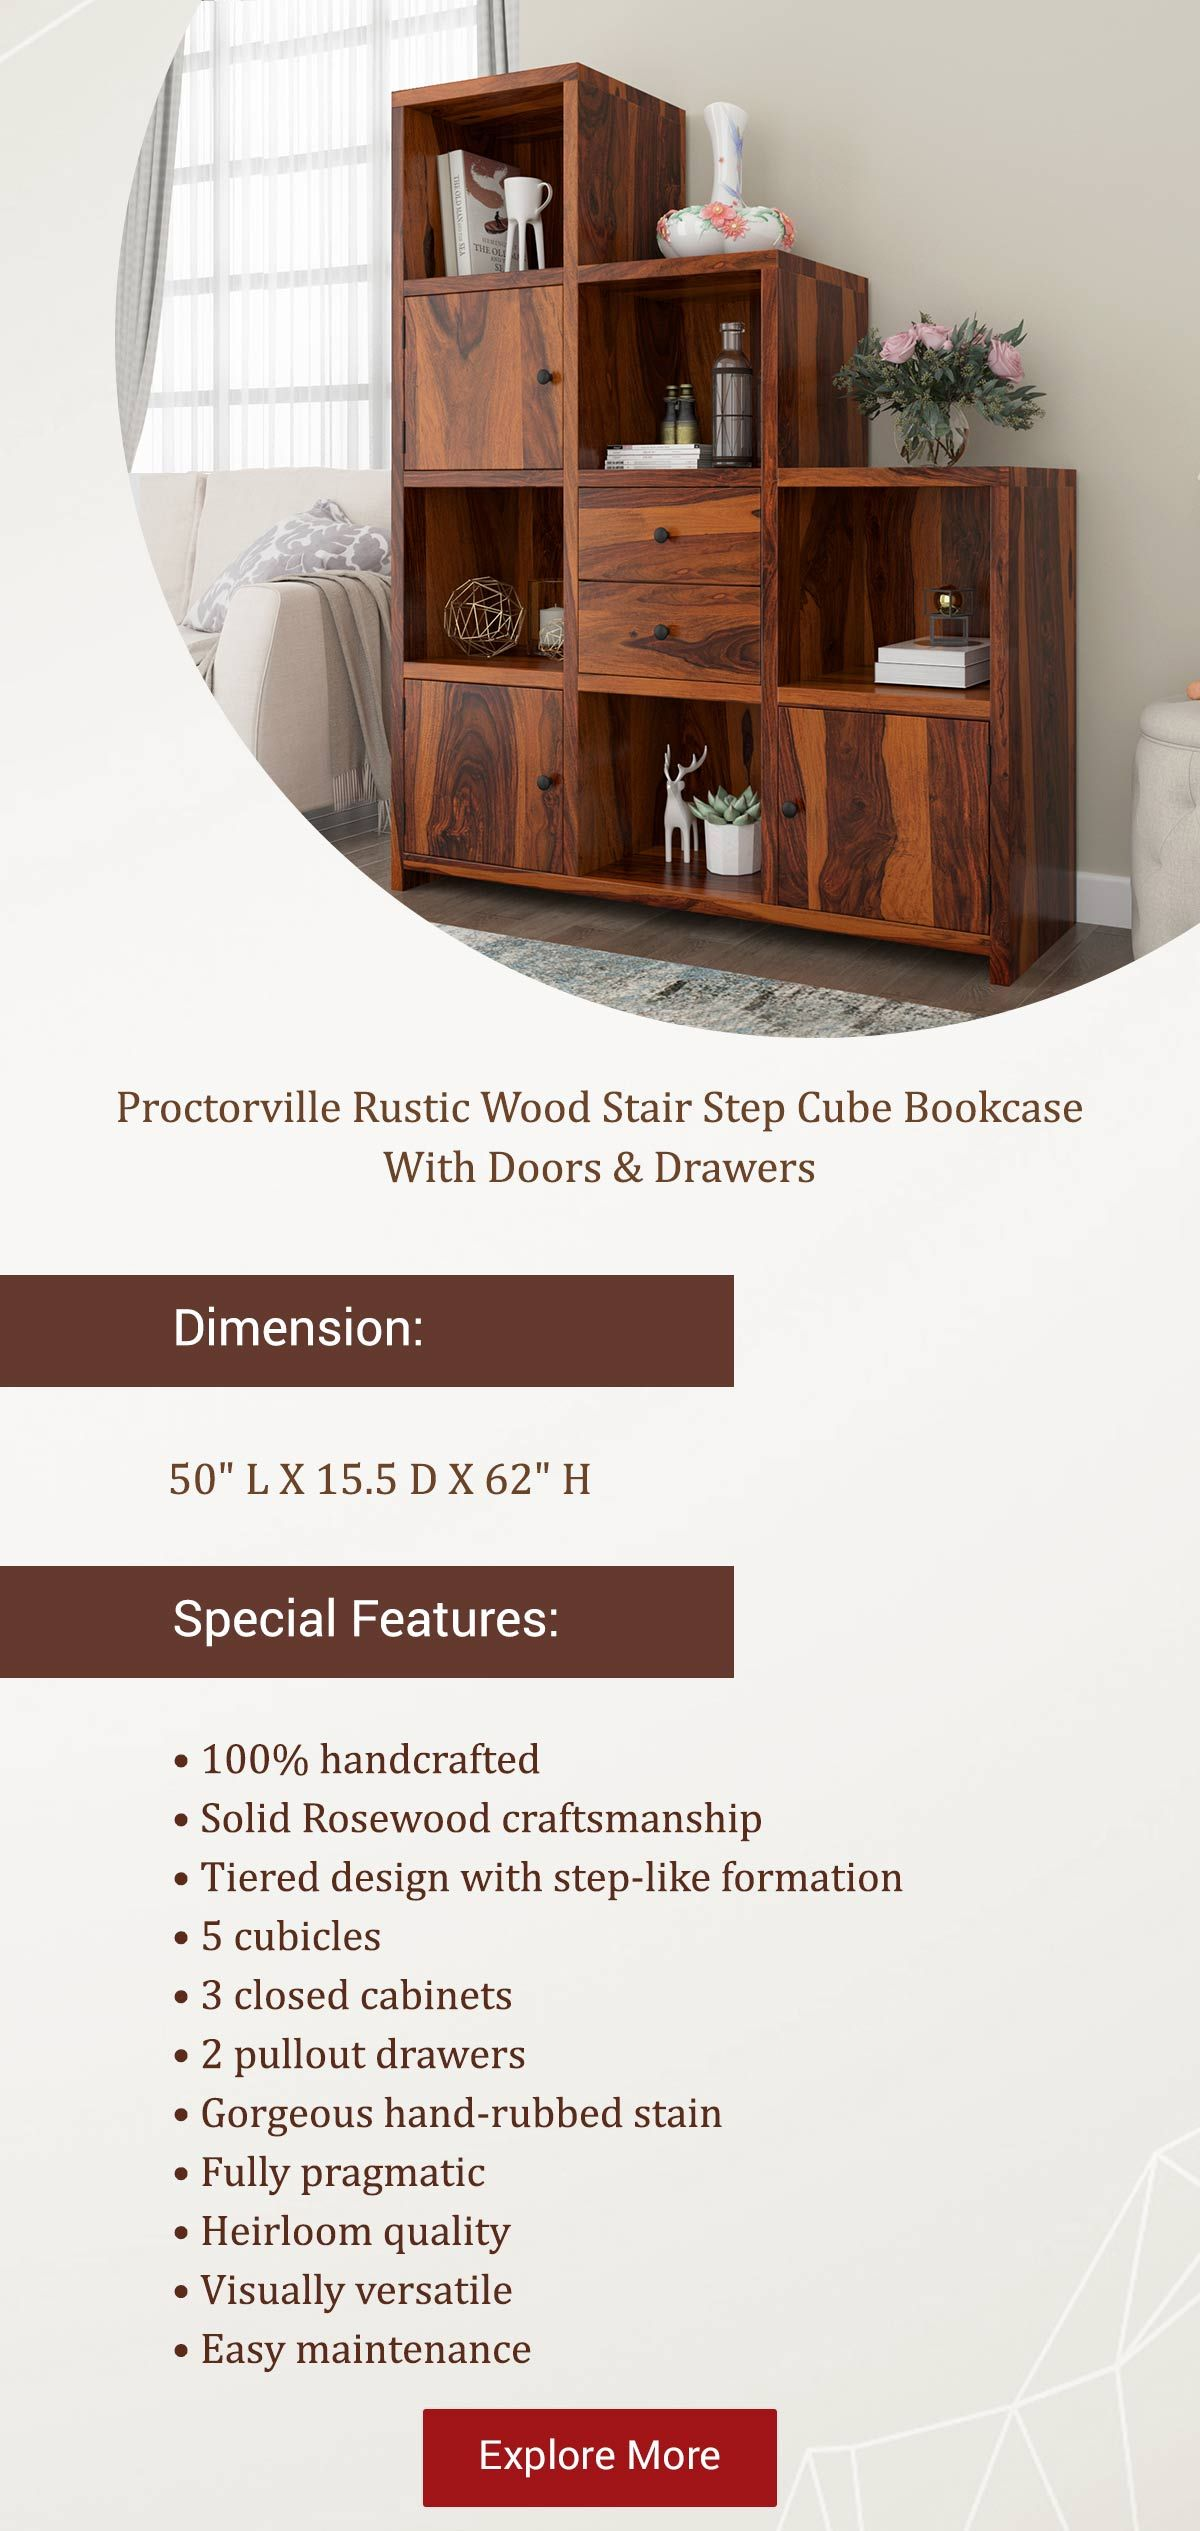 Organize Your Collection Perfectly With Solid Wood Cube Bookcases To Inhabit Books Of All Genres Seamlessly In E Cube Bookcase Wood Stairs Bookcase Inspiration